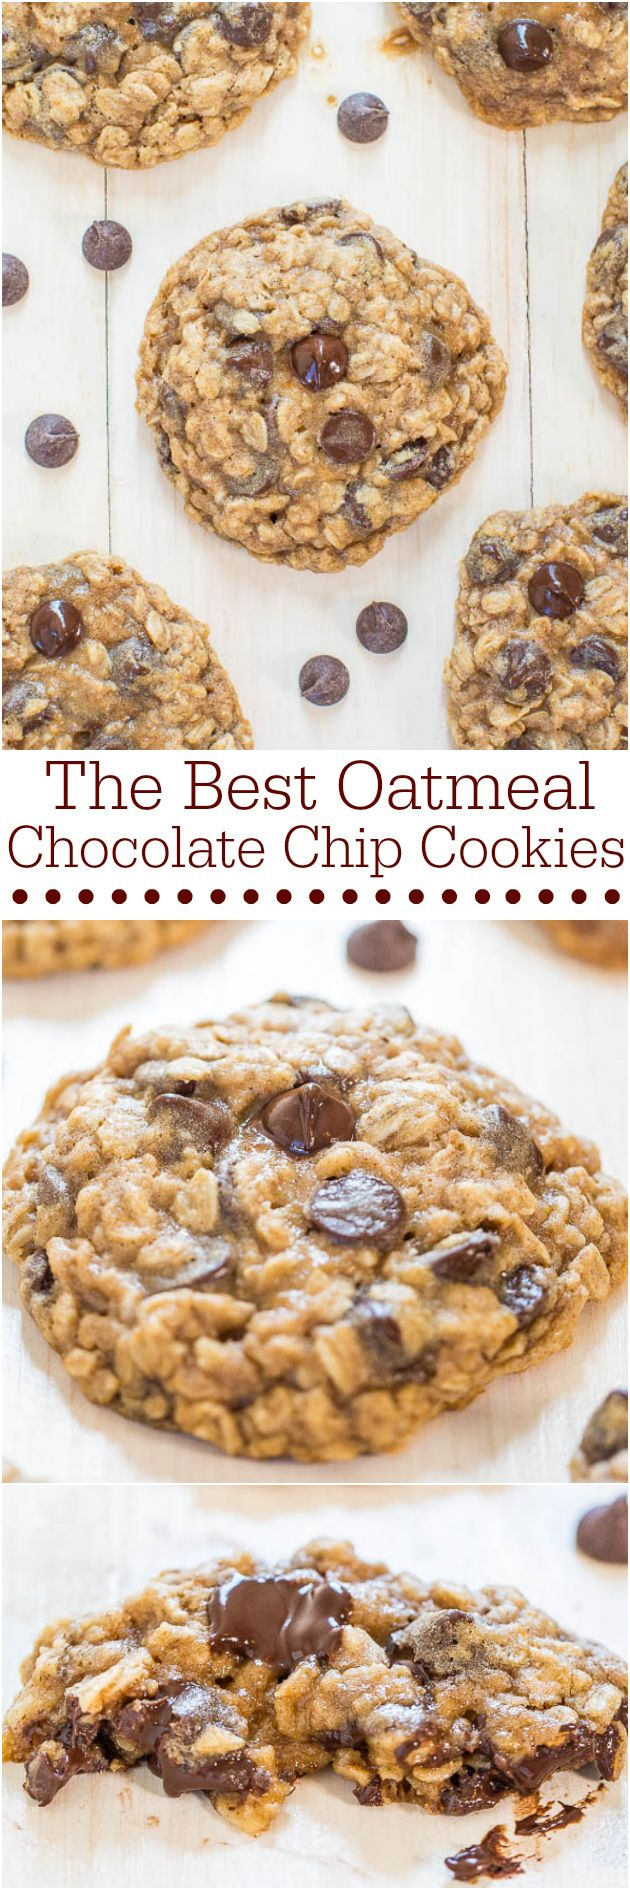 Loaded Oatmeal Chocolate Chip Cookies | Best Oatmeal ...